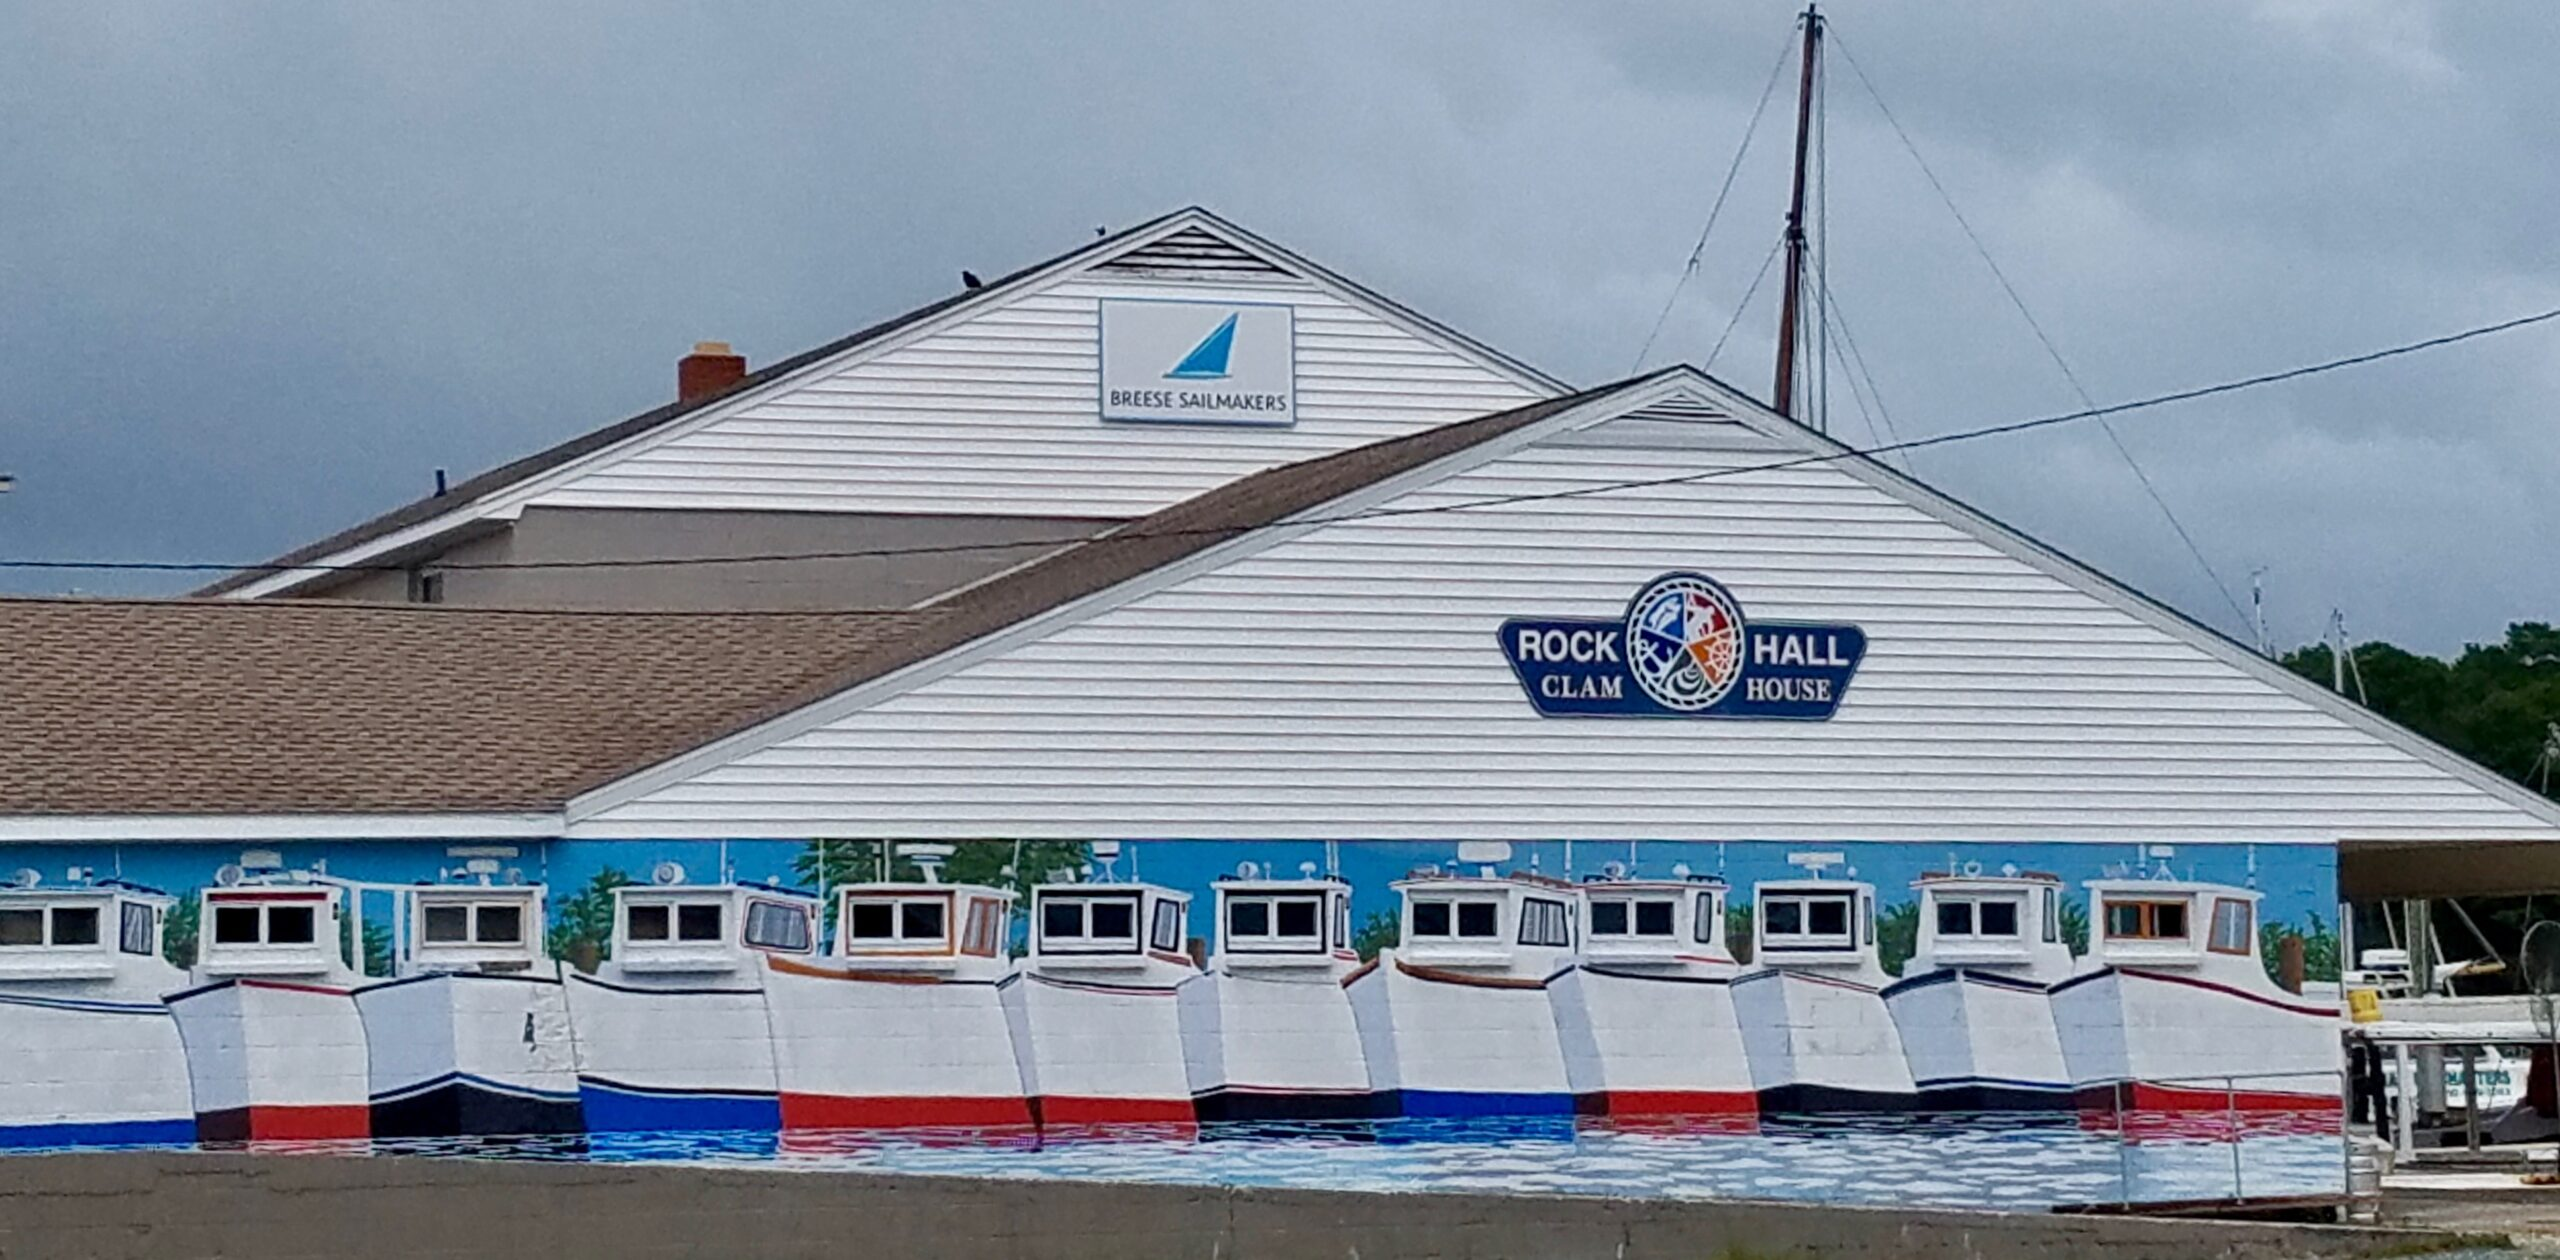 Breese Sailmakers at Rock Hall Clam House